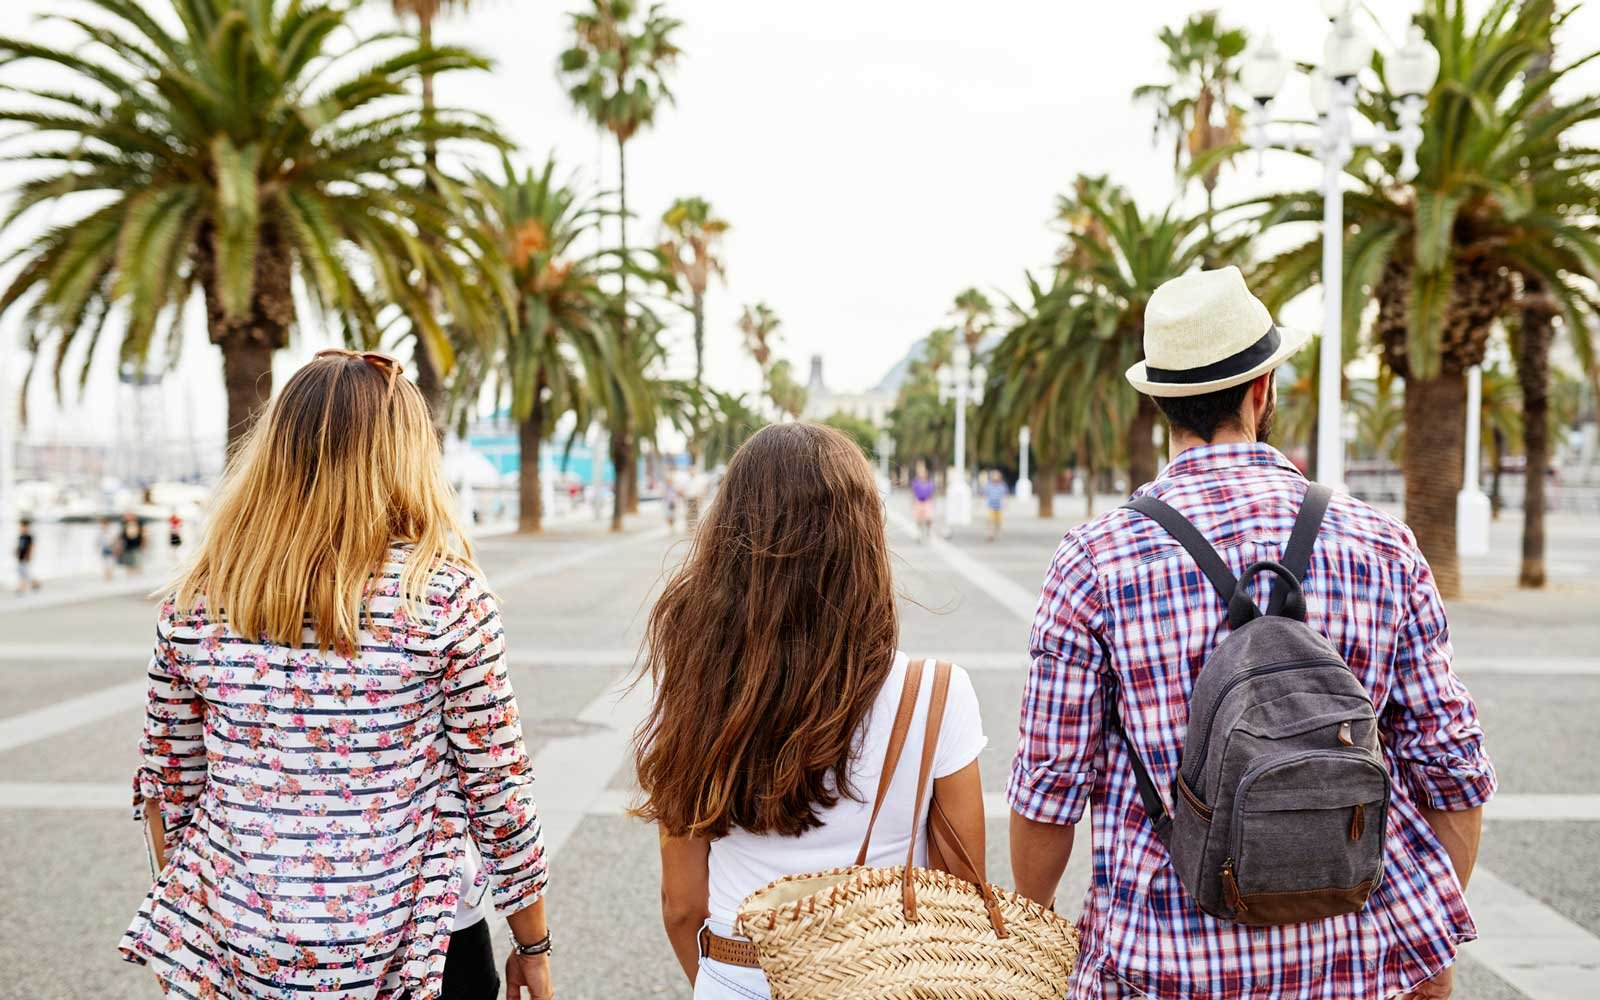 How to Go on Vacation With Your Friends If You Can't Really Afford It  Travel + Leisure